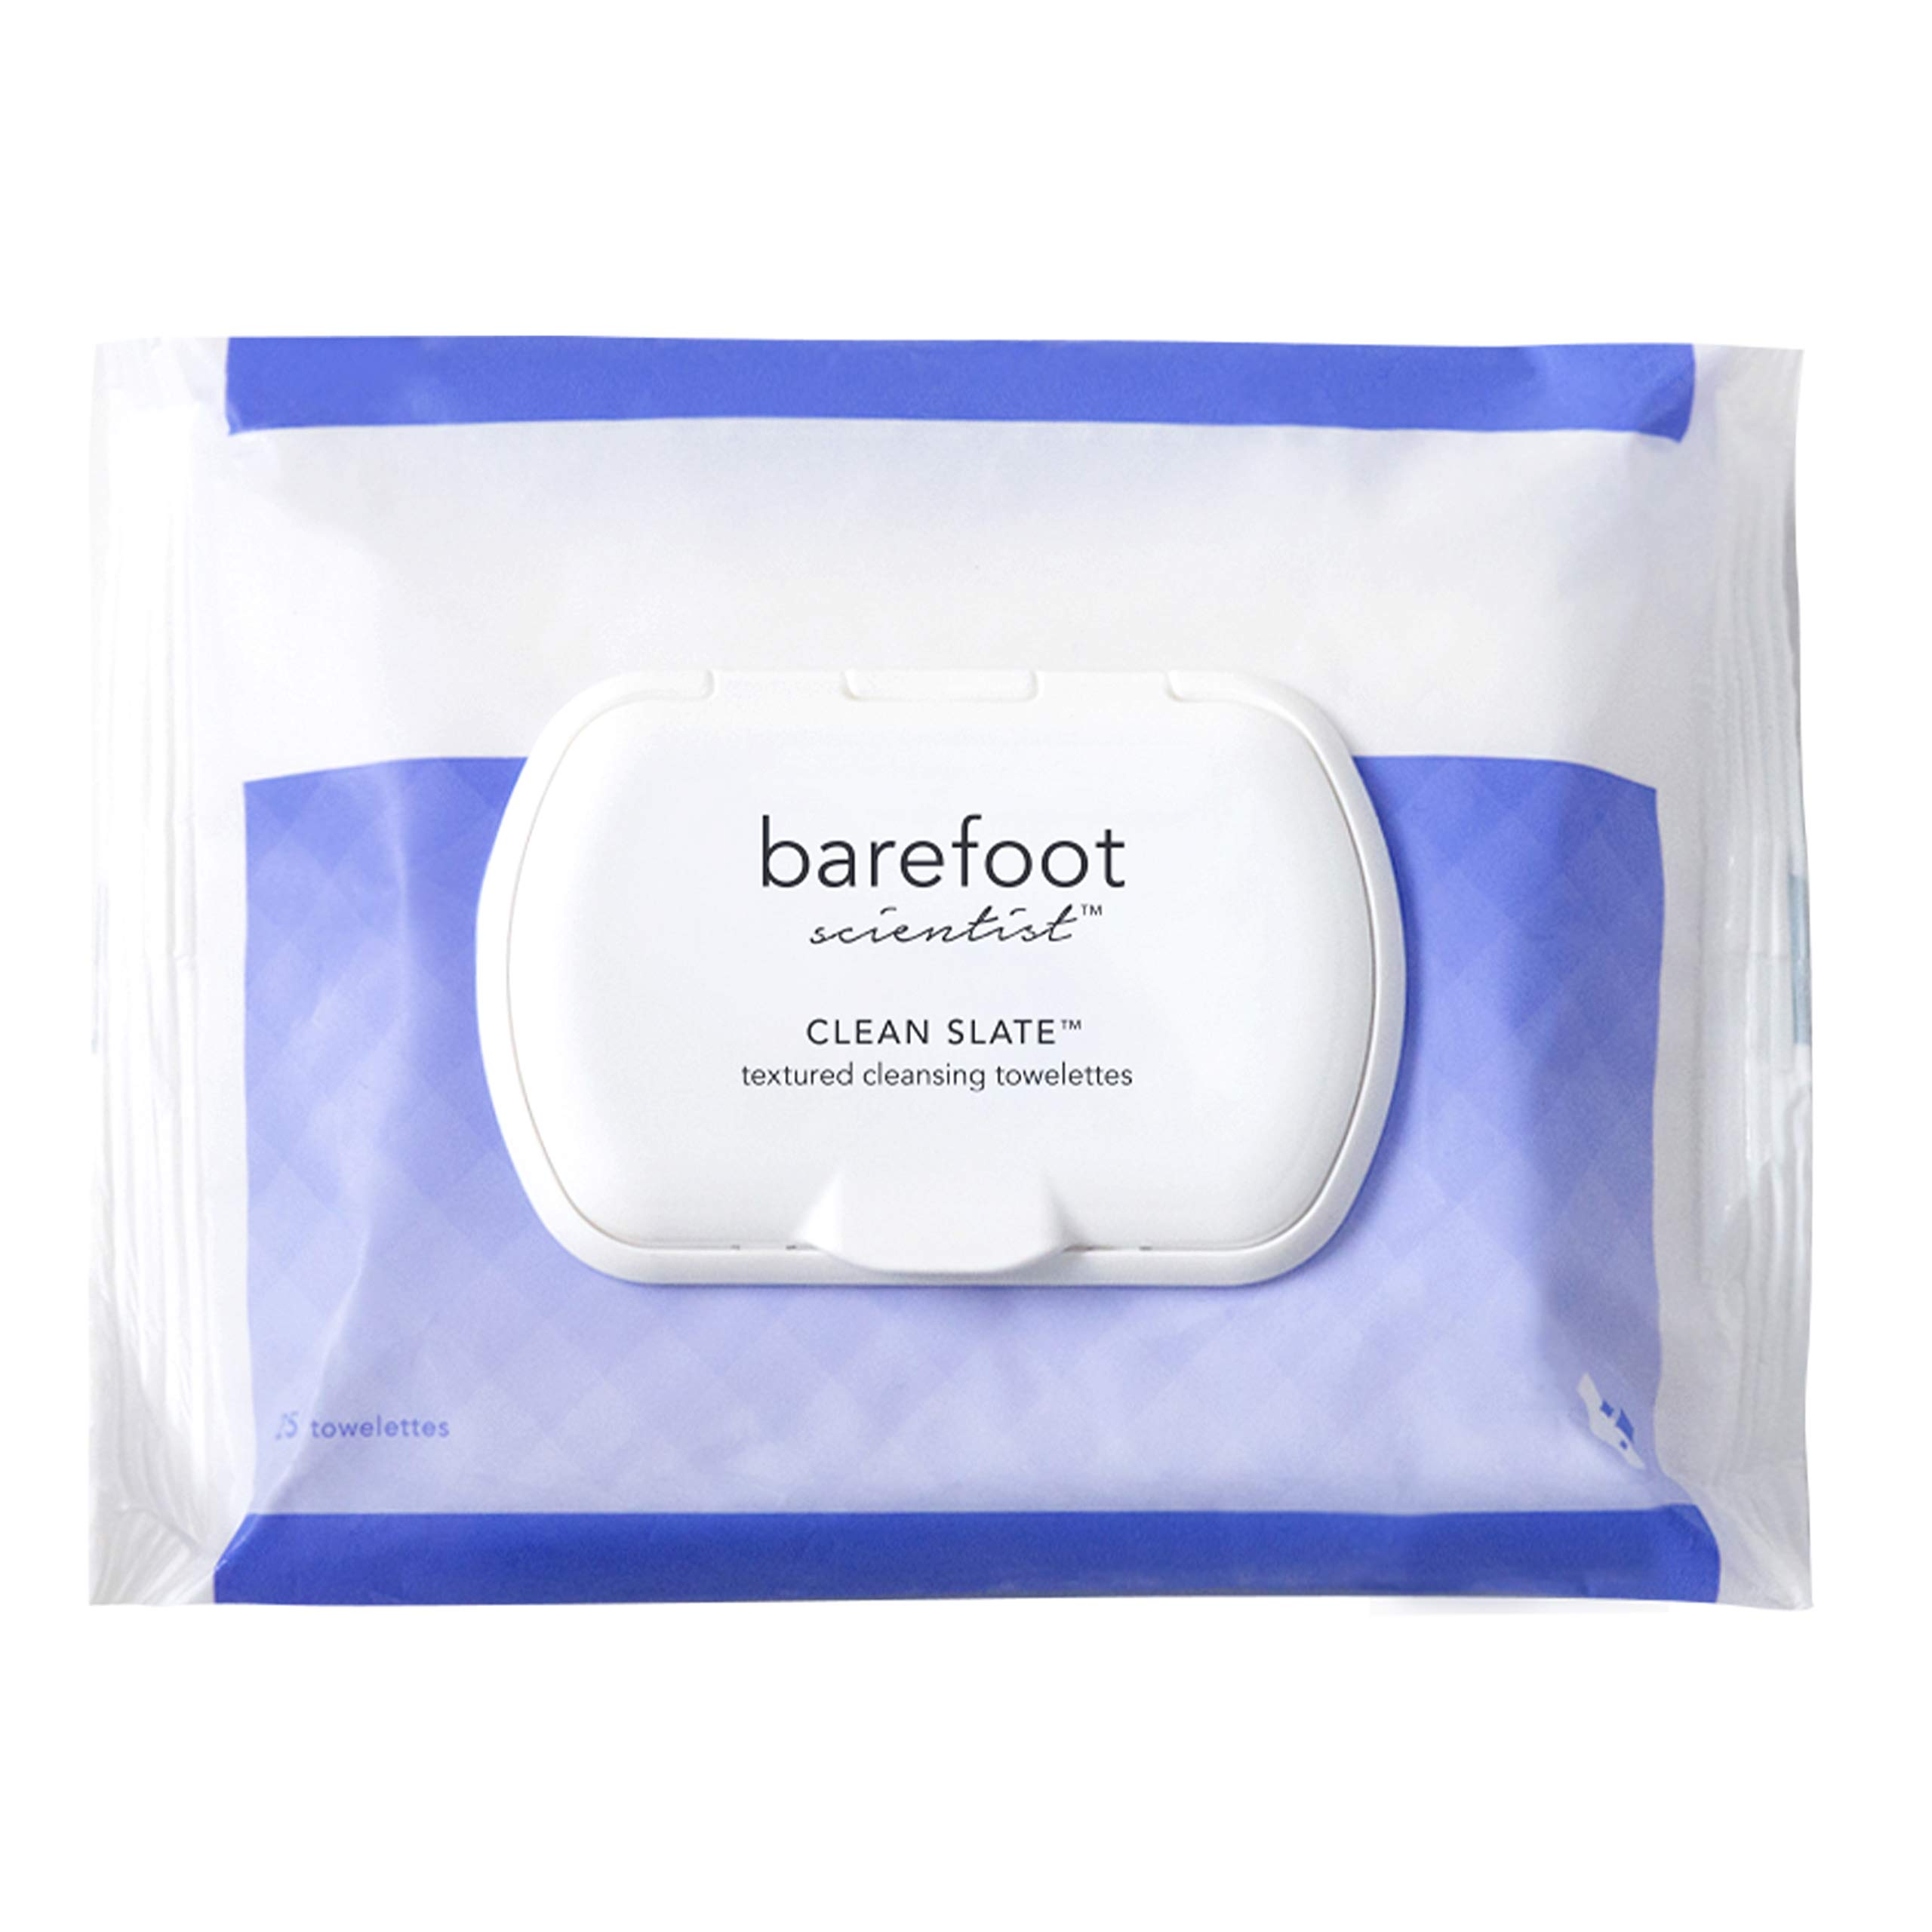 Barefoot Scientist Clean Slate Textured Cleansing Towelettes, Extra-Large, Extra-Strong Foot Disinfecting Wipes